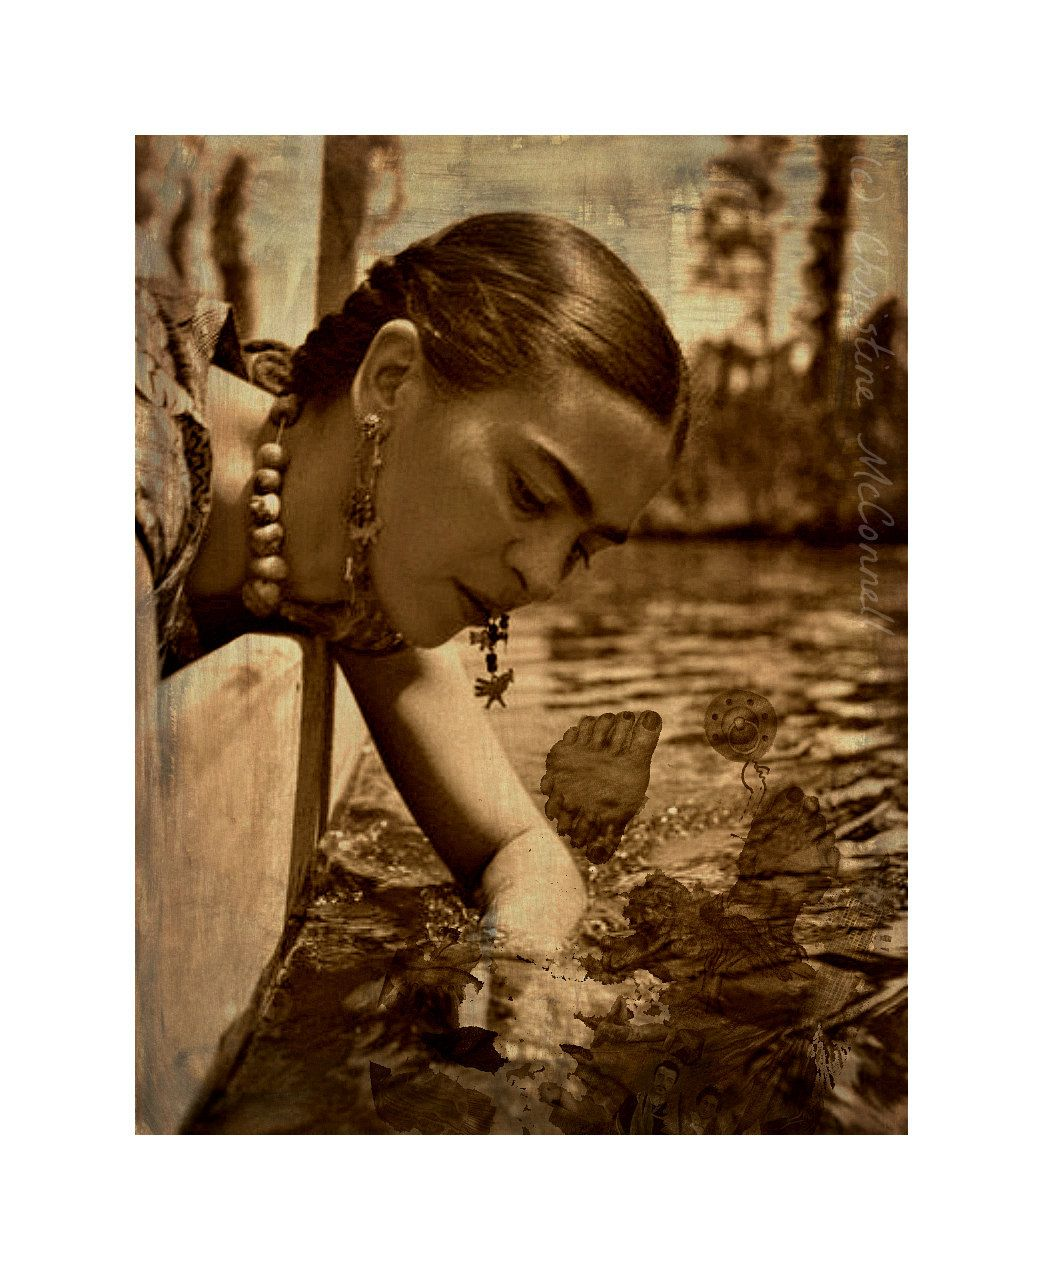 7865c3166d5 Frida Kahlo Photomontage What The Water Gave Me Art Print Original 5x7  Signed Mixed Media Collage. via Etsy.